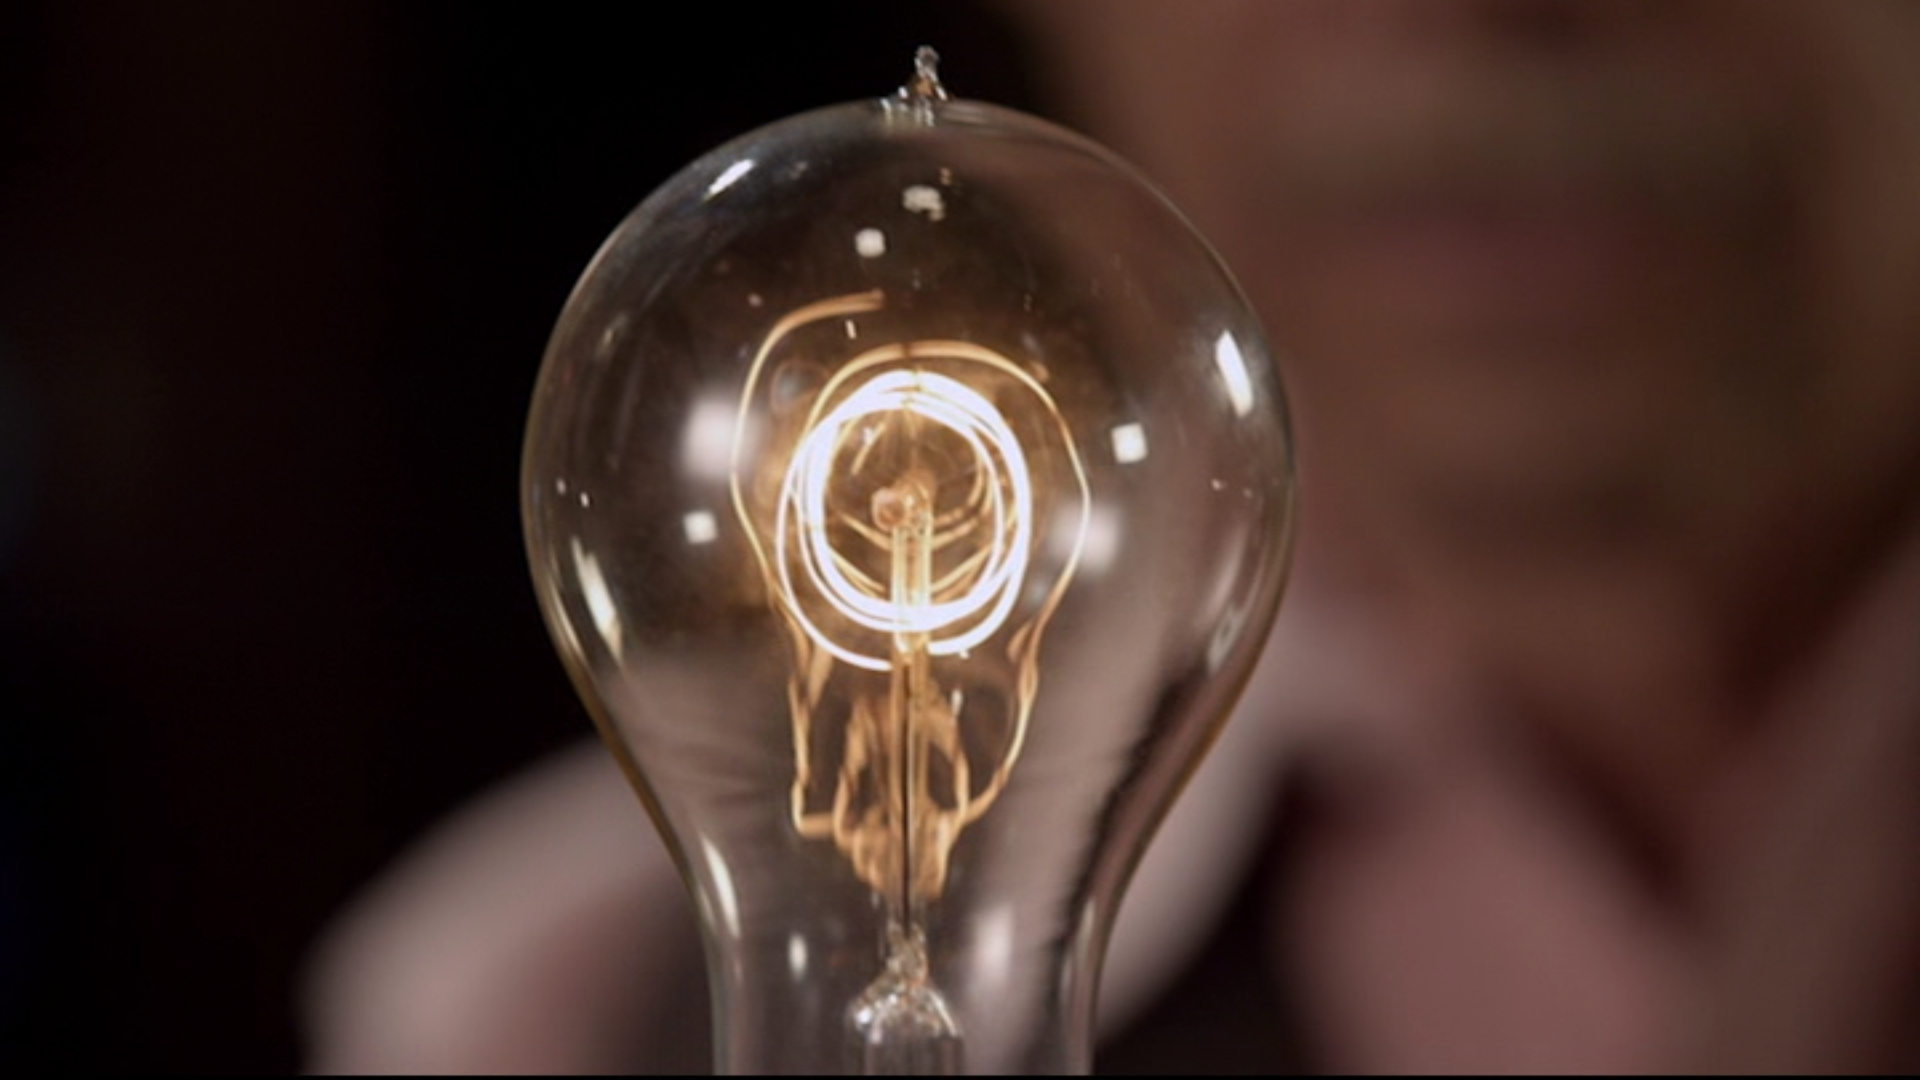 Harry Blackstone, Sr.'s Light Bulb